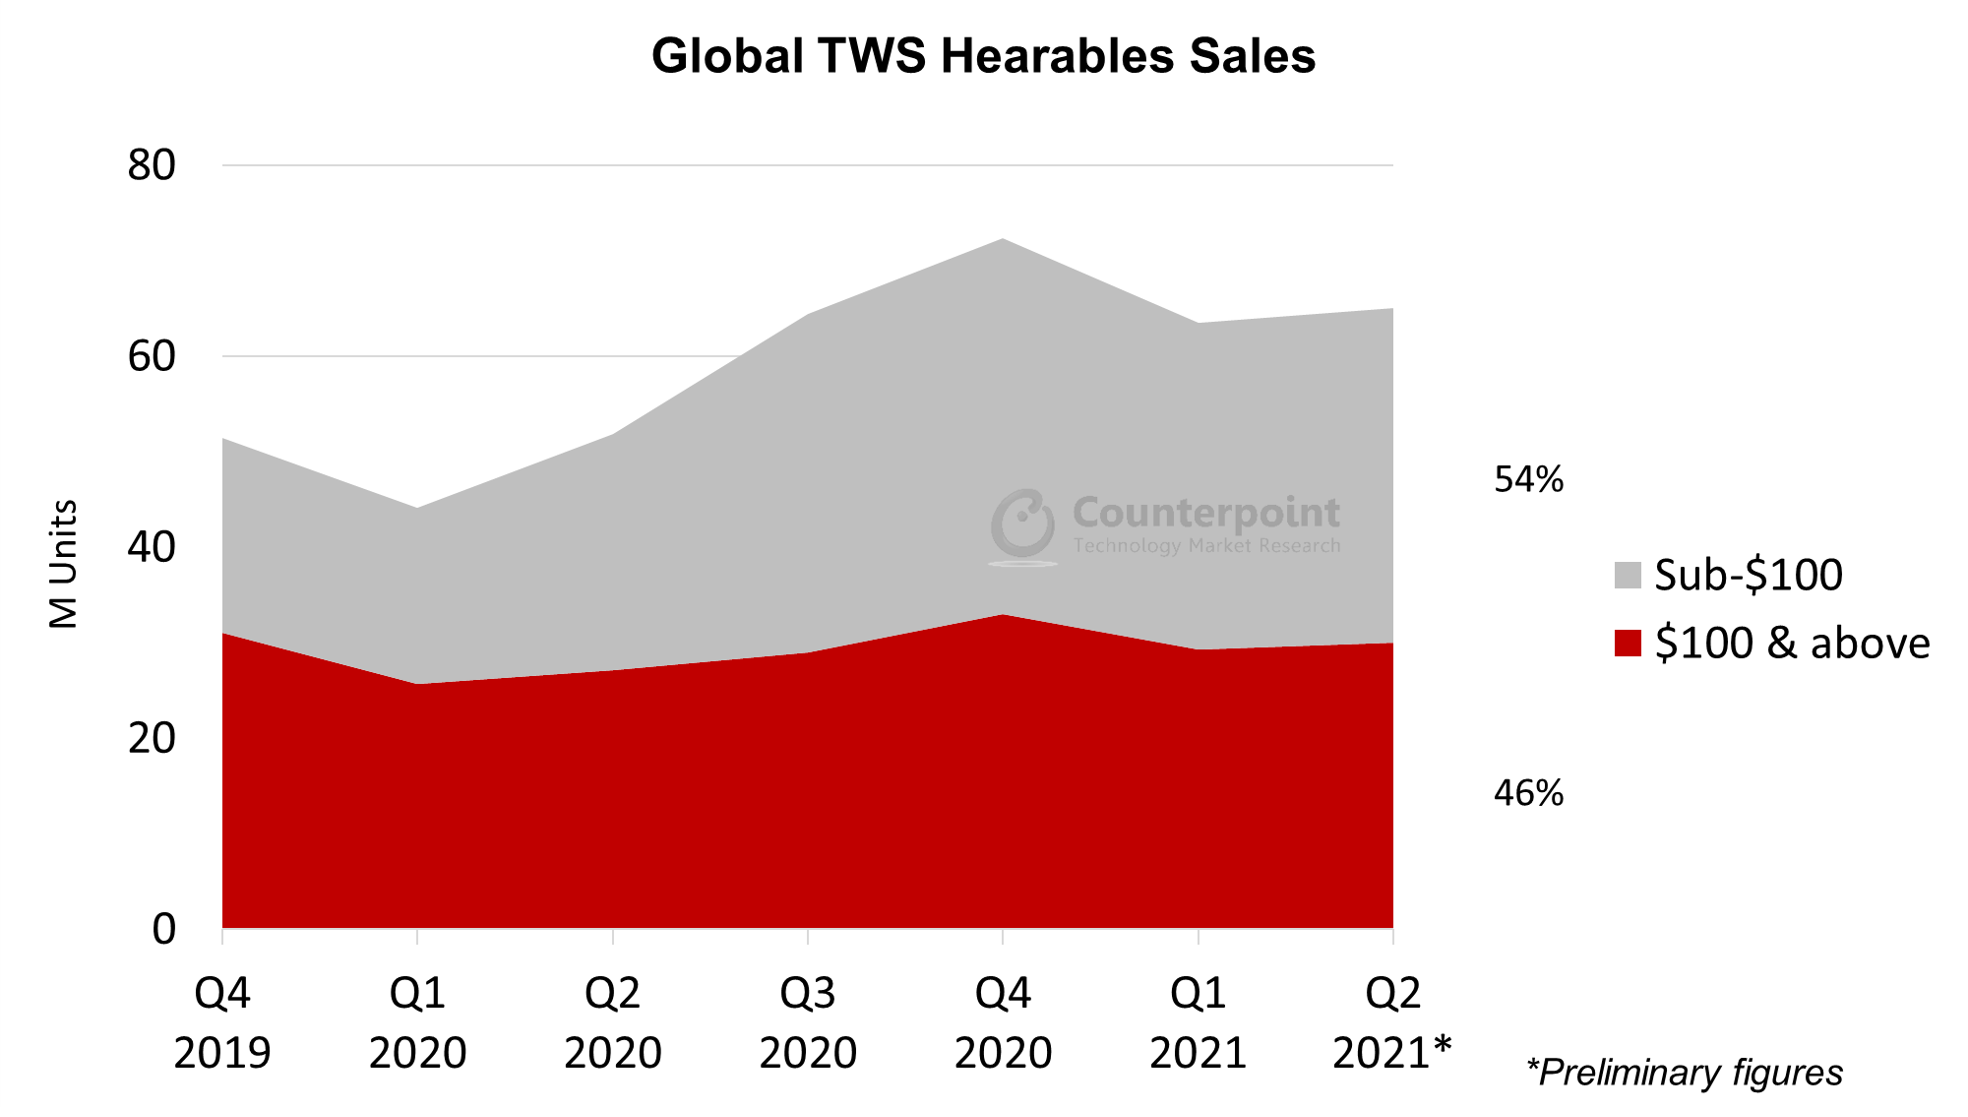 Counterpoint Research Global TWS Hearables Sales